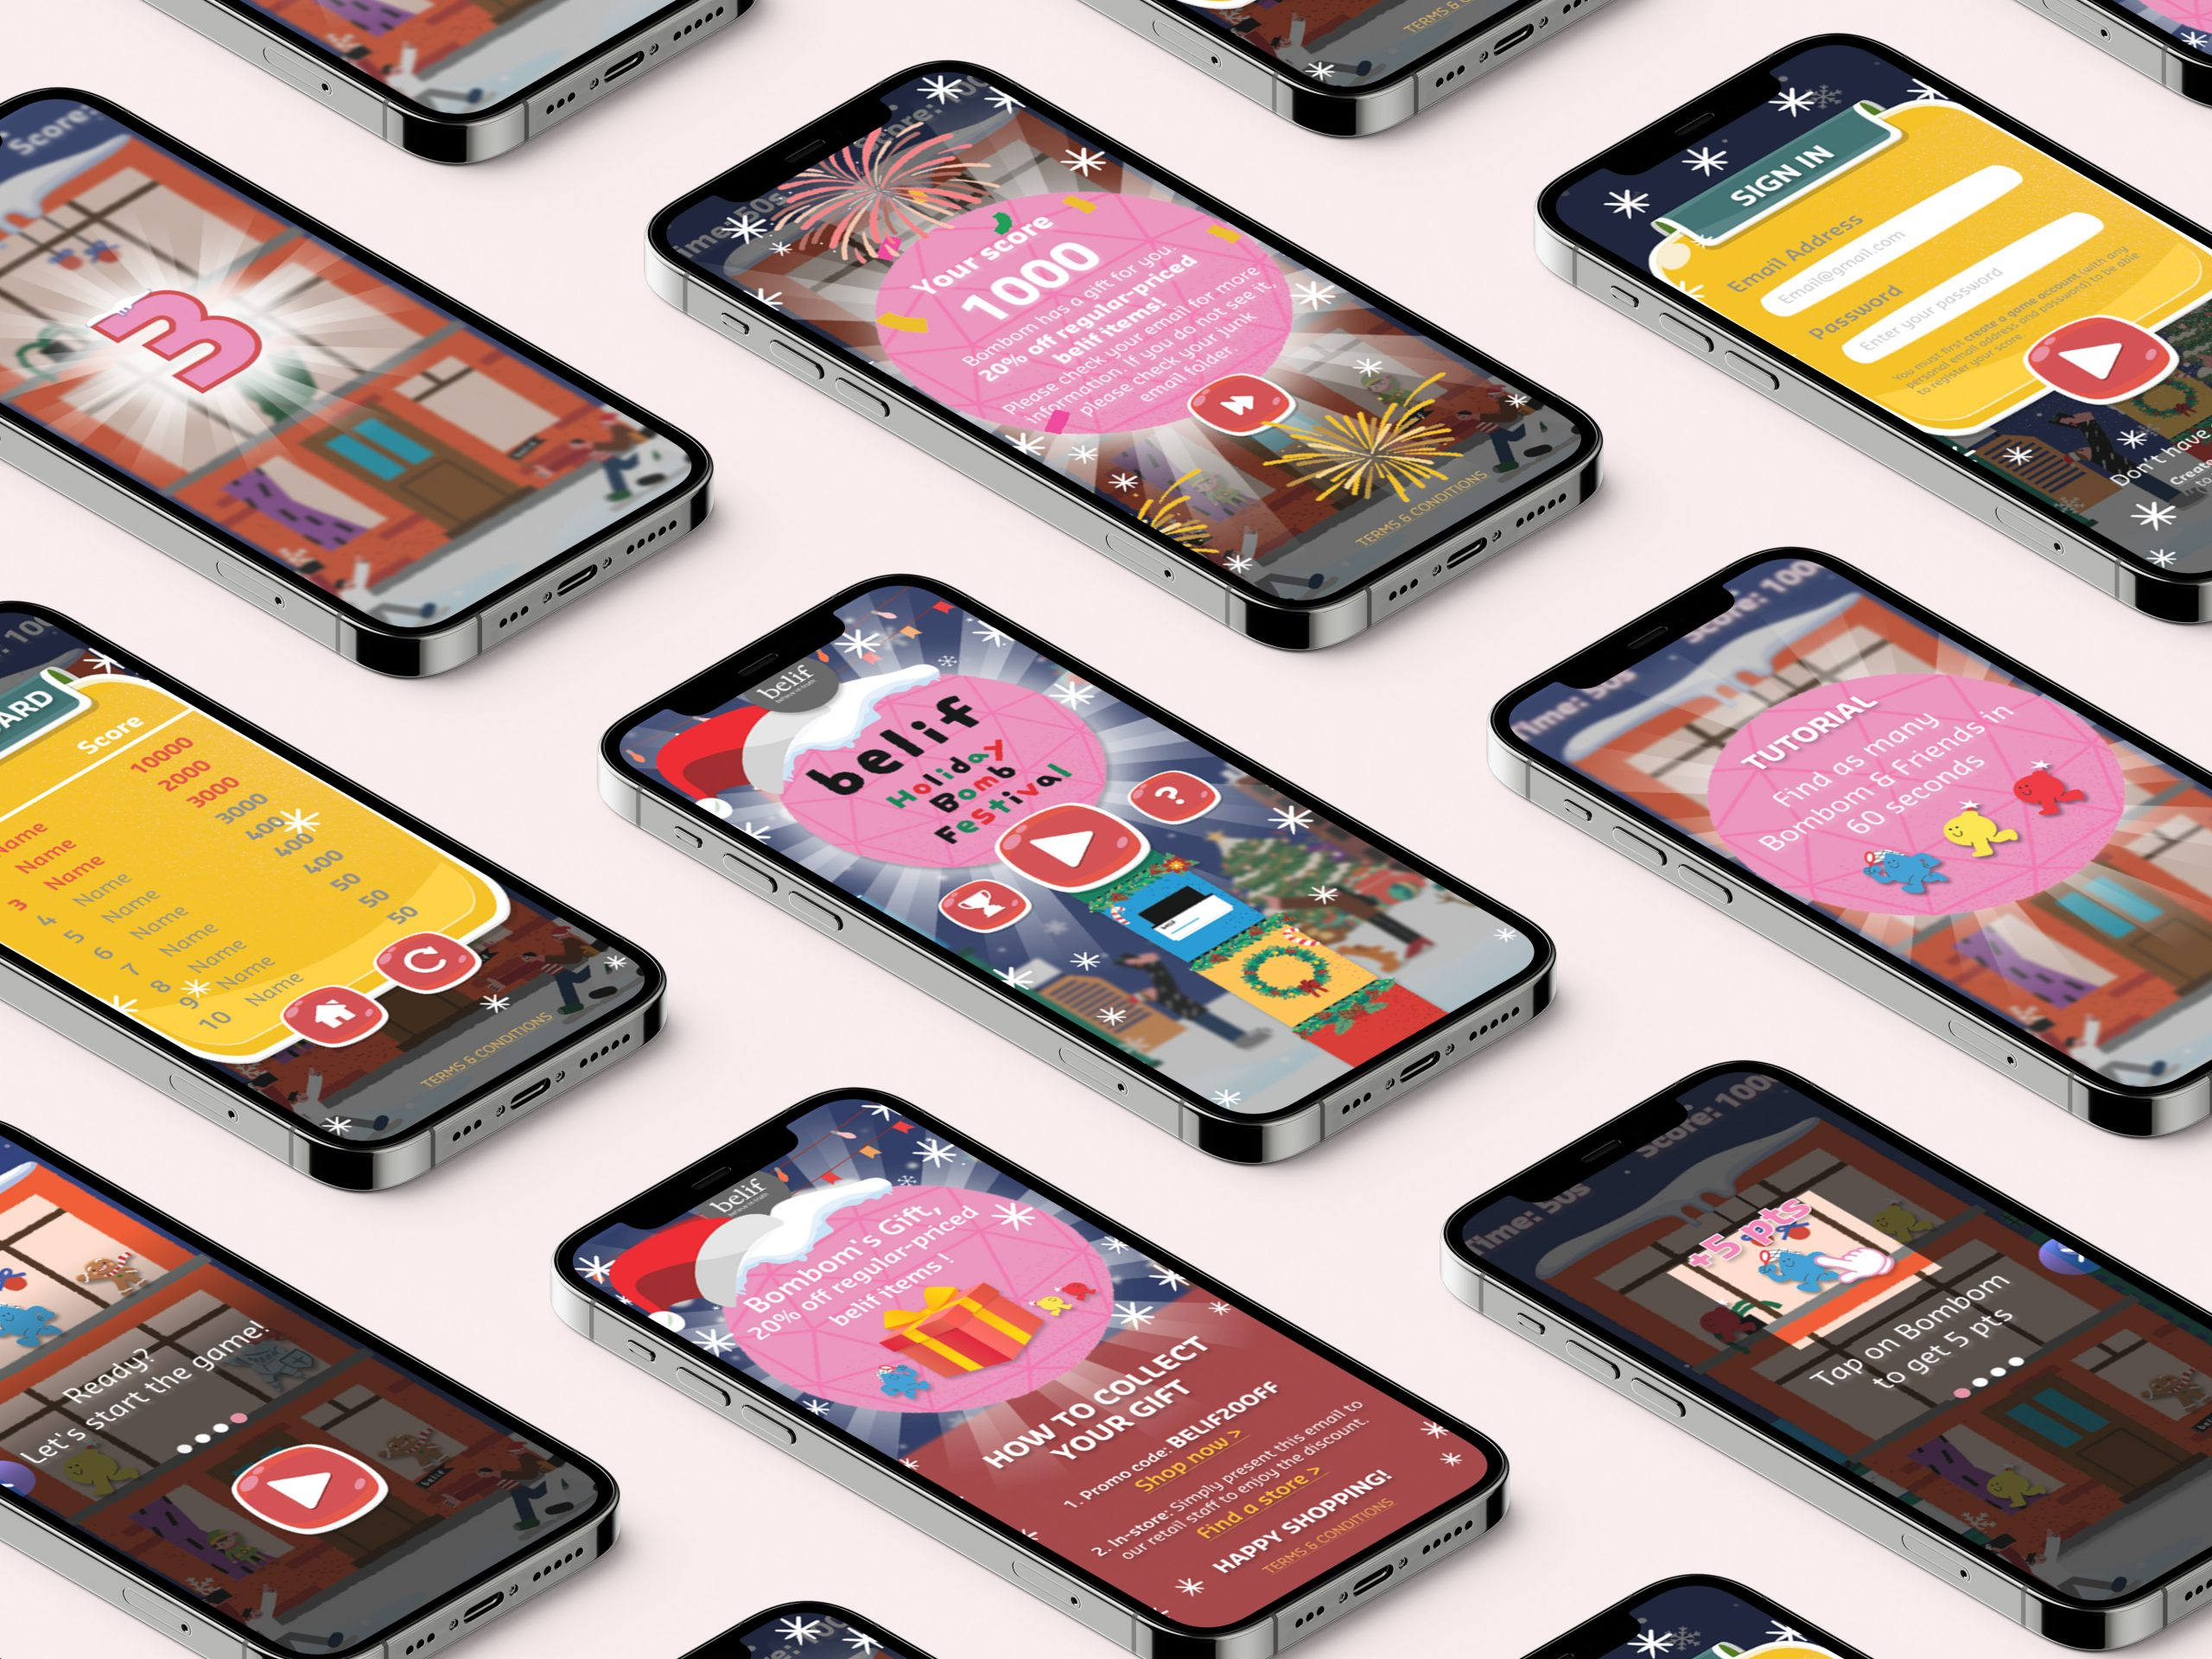 iPhone 12 Pro Max Mockup For Belif Holiday Bomb Festival Microsite Game